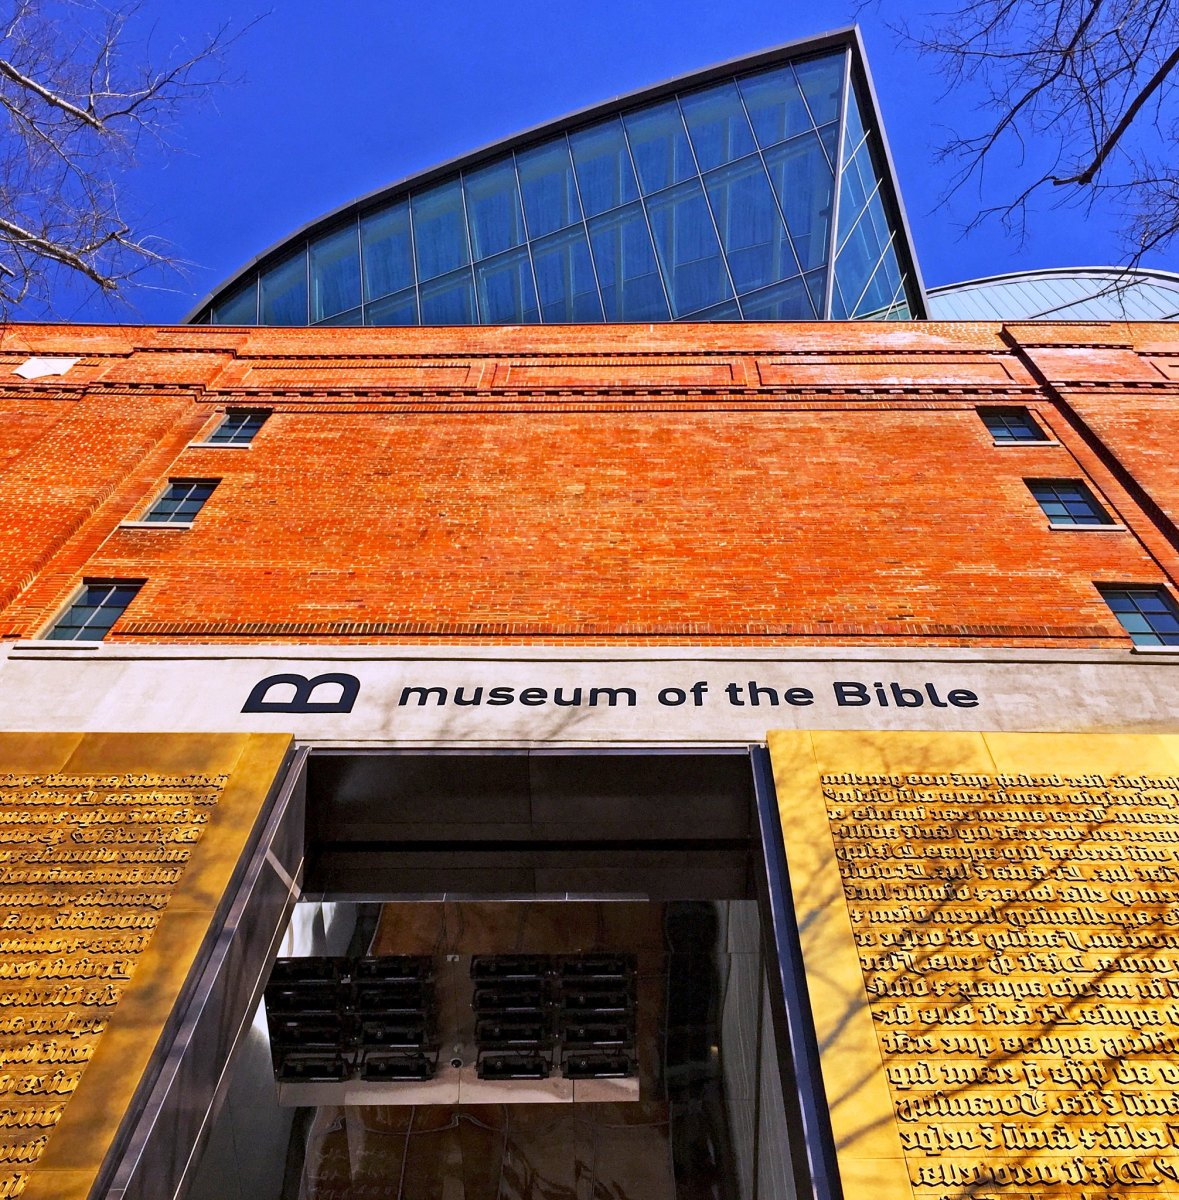 Museum of the Bible in Washington DC